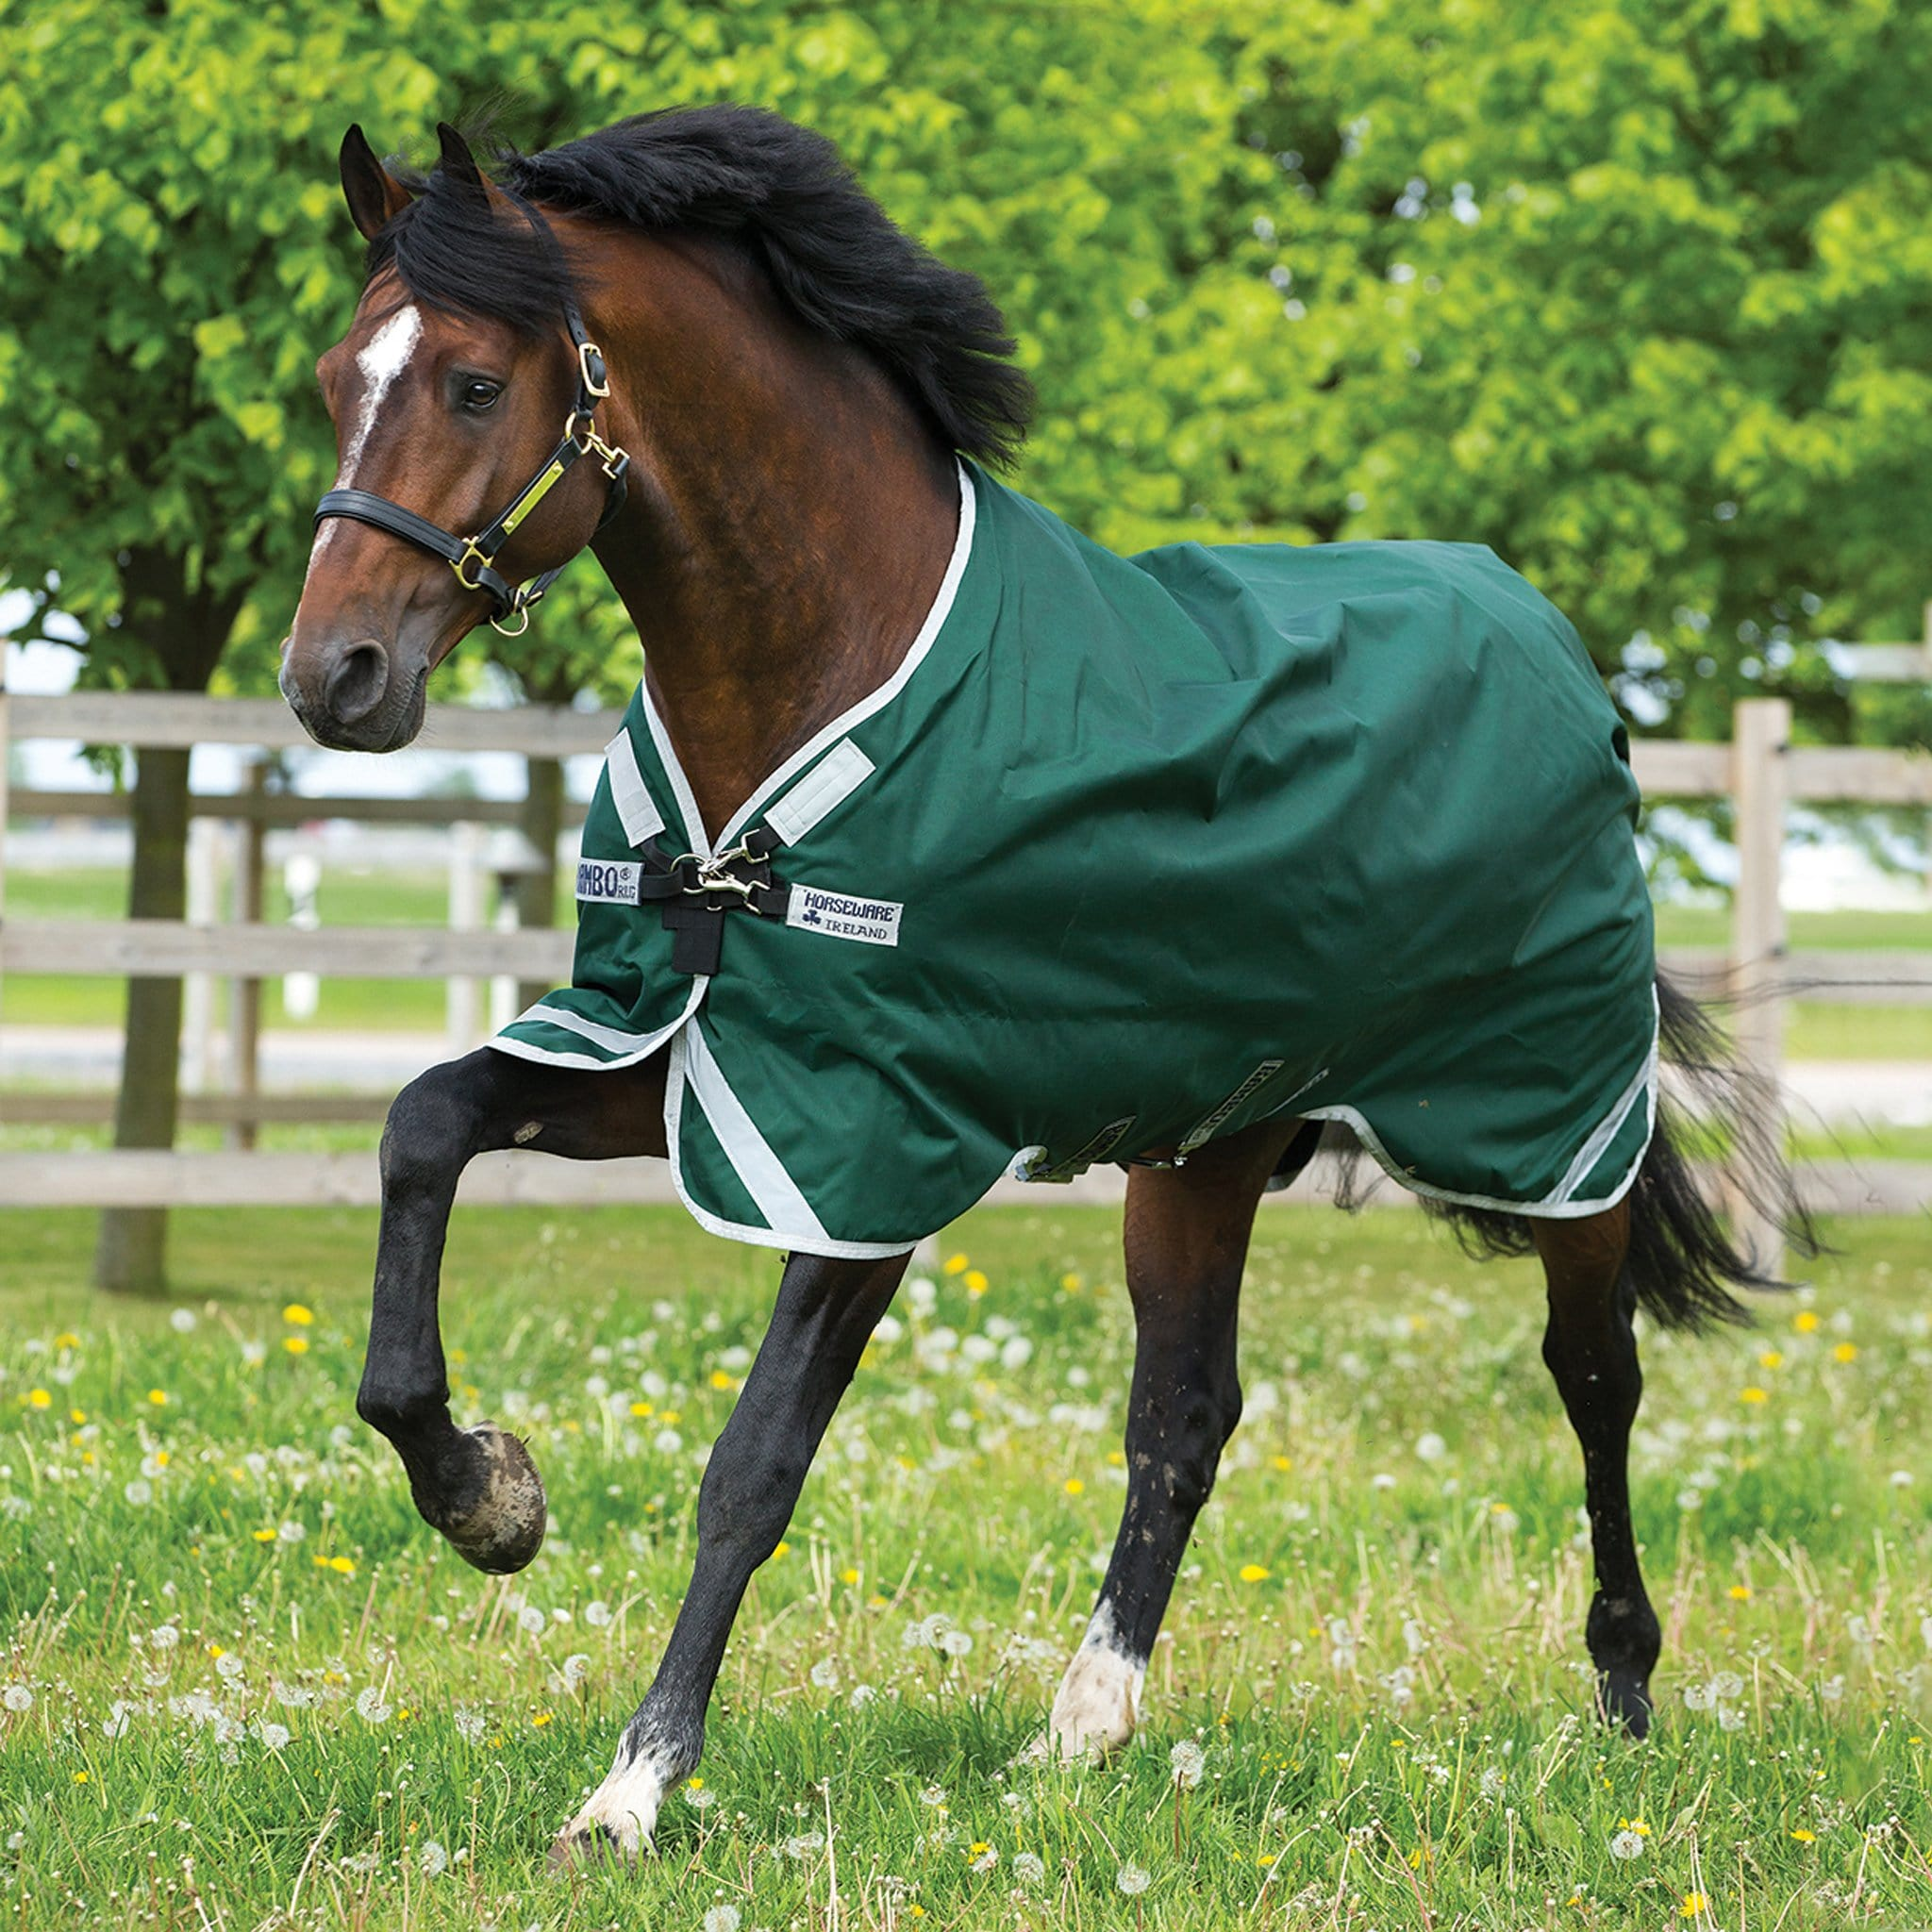 Rambo Original with Leg Arches 0g Lite Standard Neck Turnout Rug AAAA98 Green With Silver Trim On Bay Horse In The Field